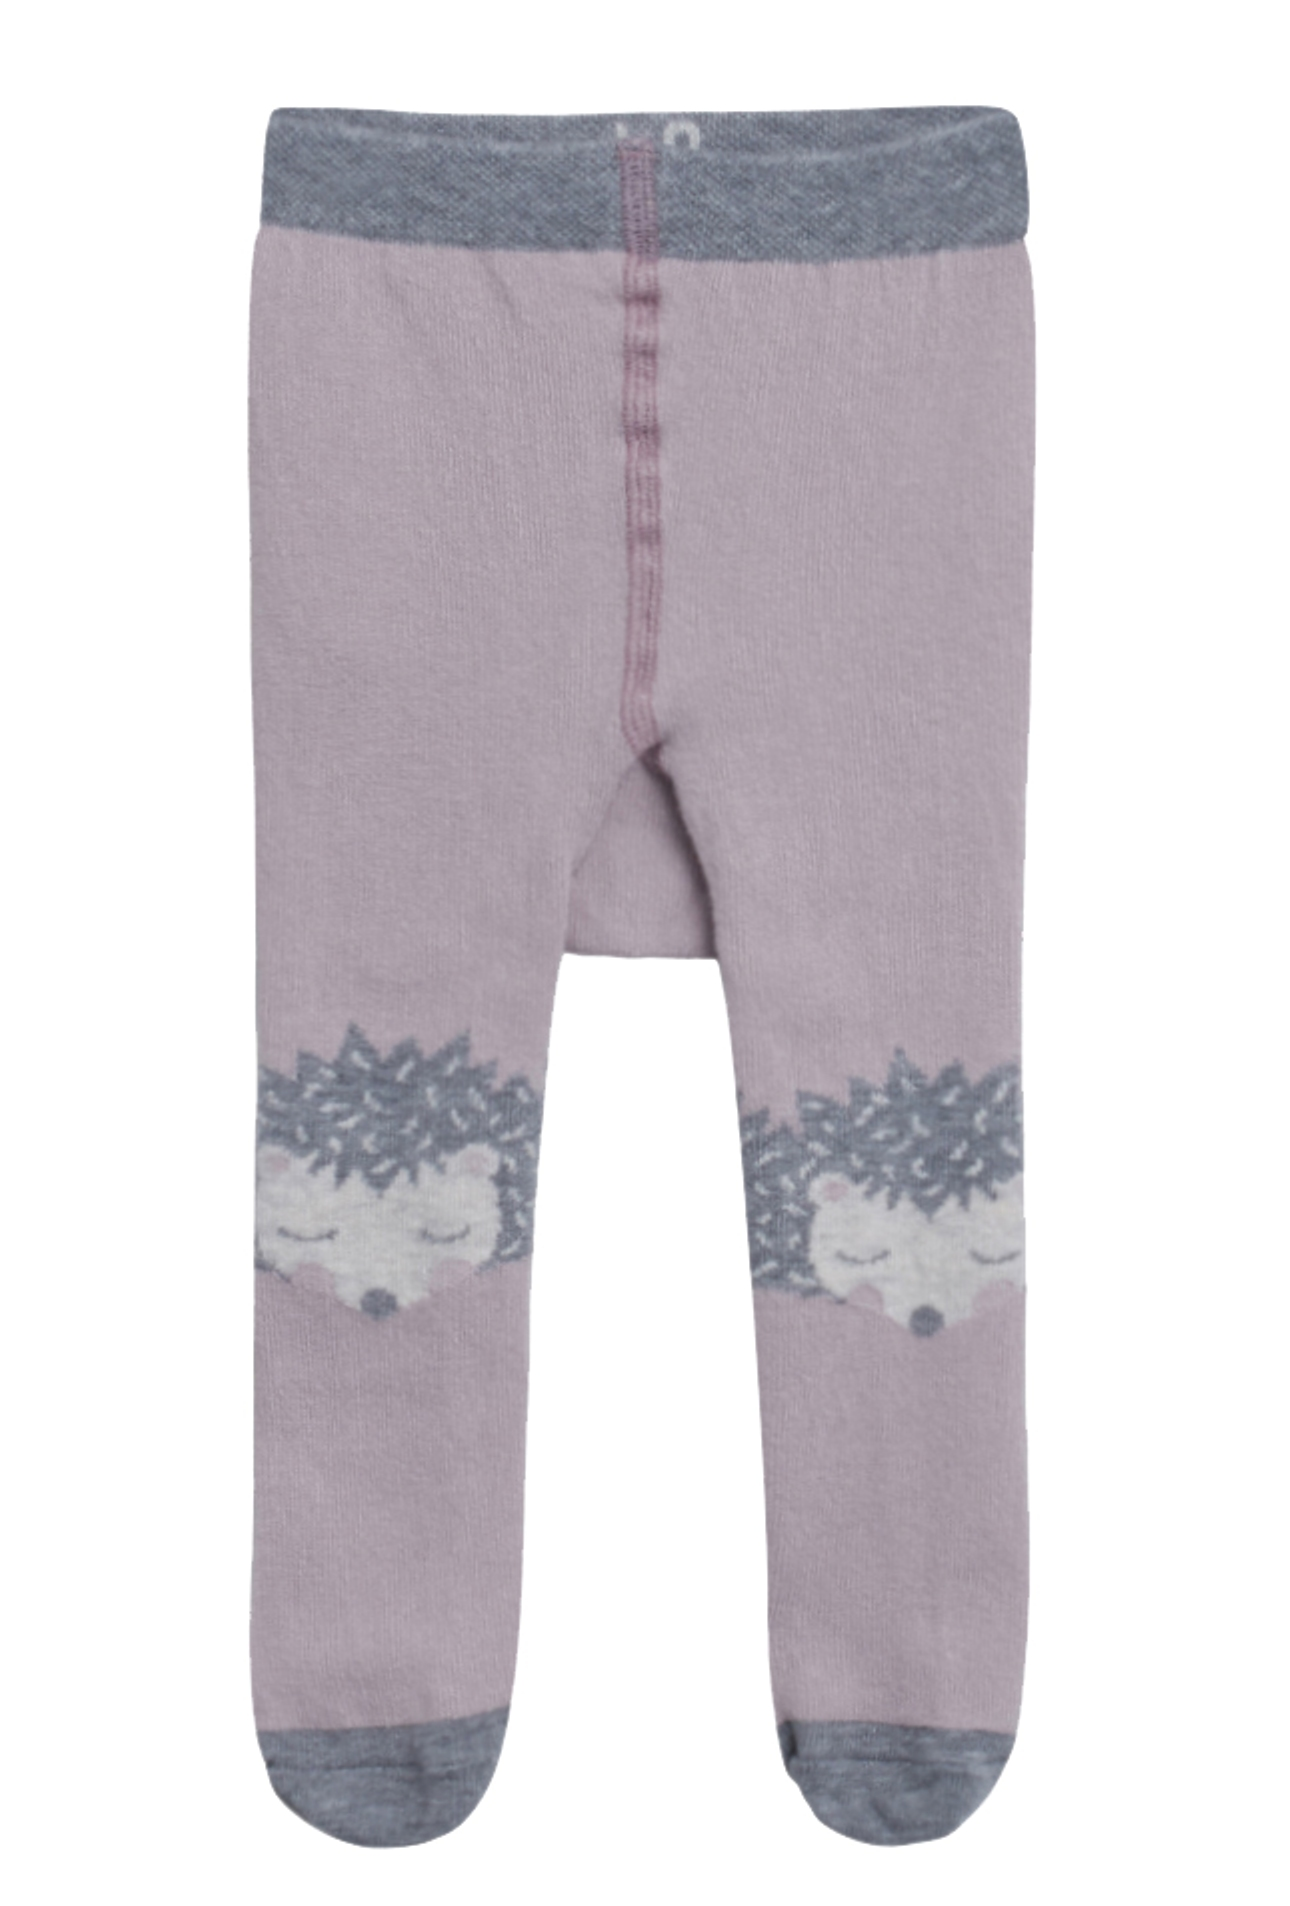 Hust & Claire Strumpfhose Frankie Dusty Rose